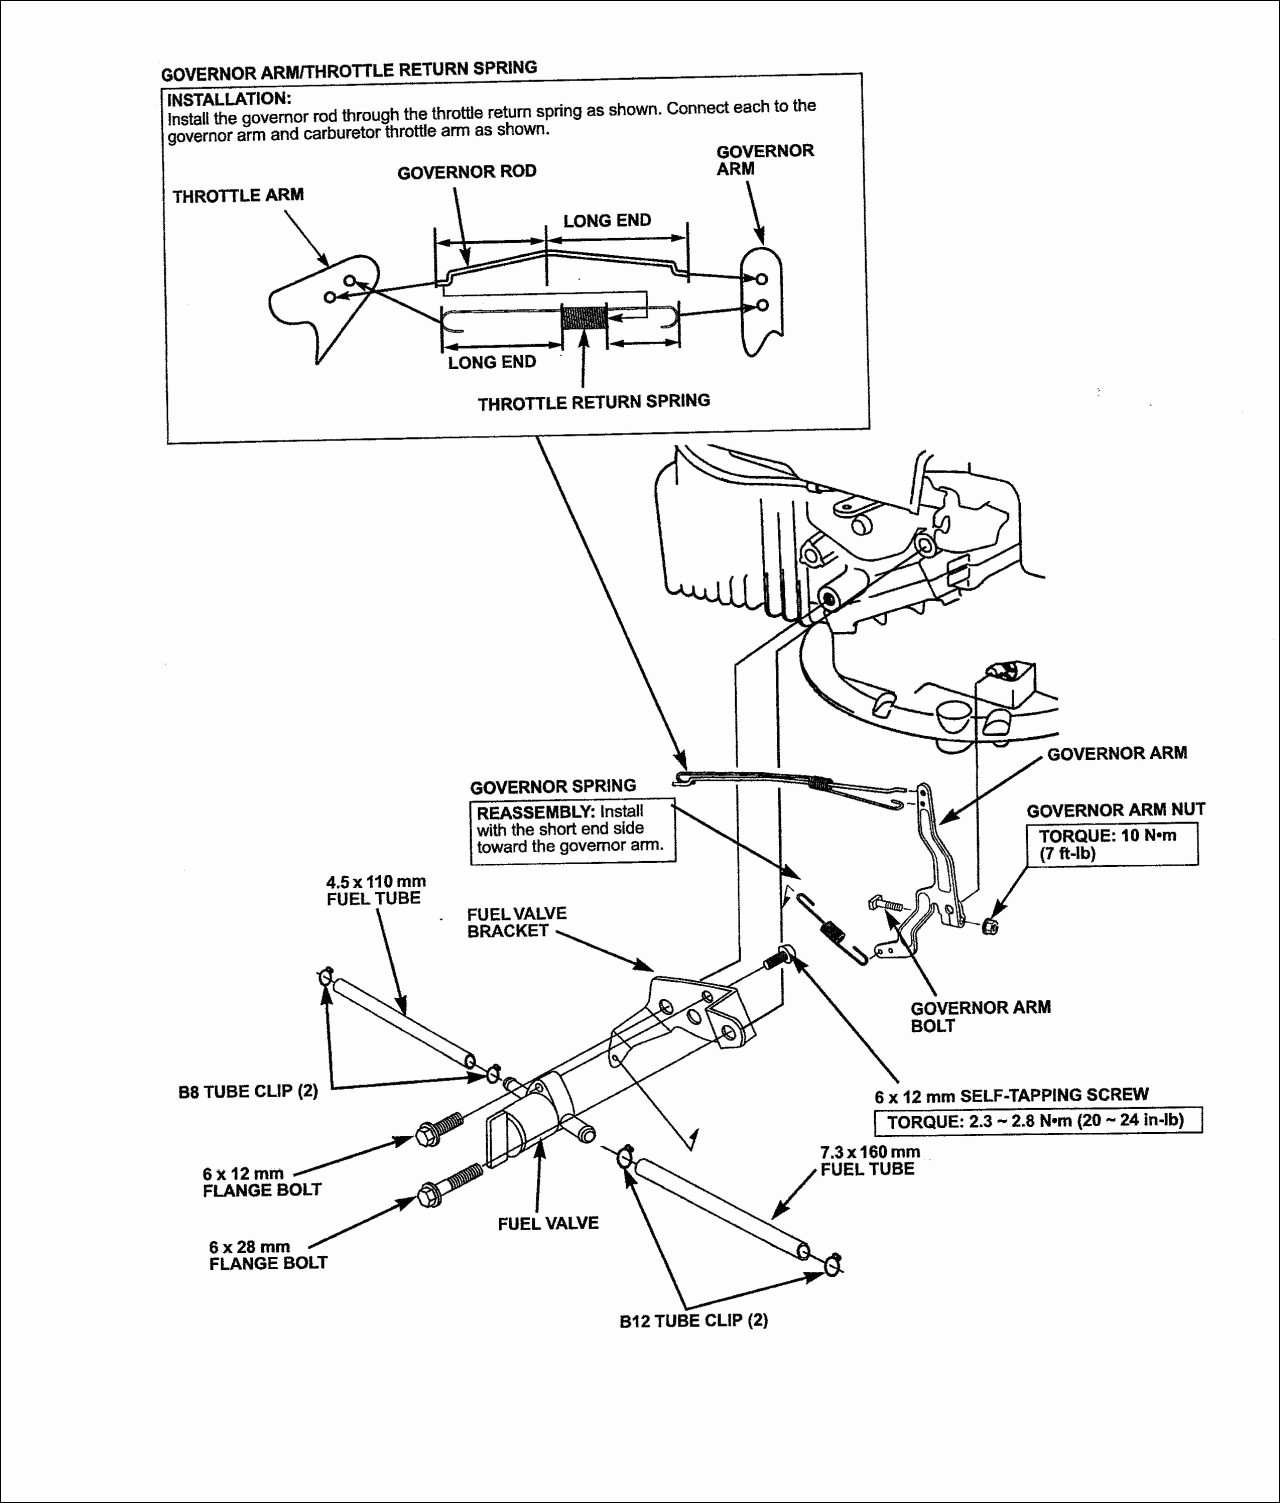 rim tube wiring diagram wiring diagram database 98 Silverado Wiring Diagram 1997 q45 engine diagram wiring diagram blog data simple wiring diagrams rim tube wiring diagram